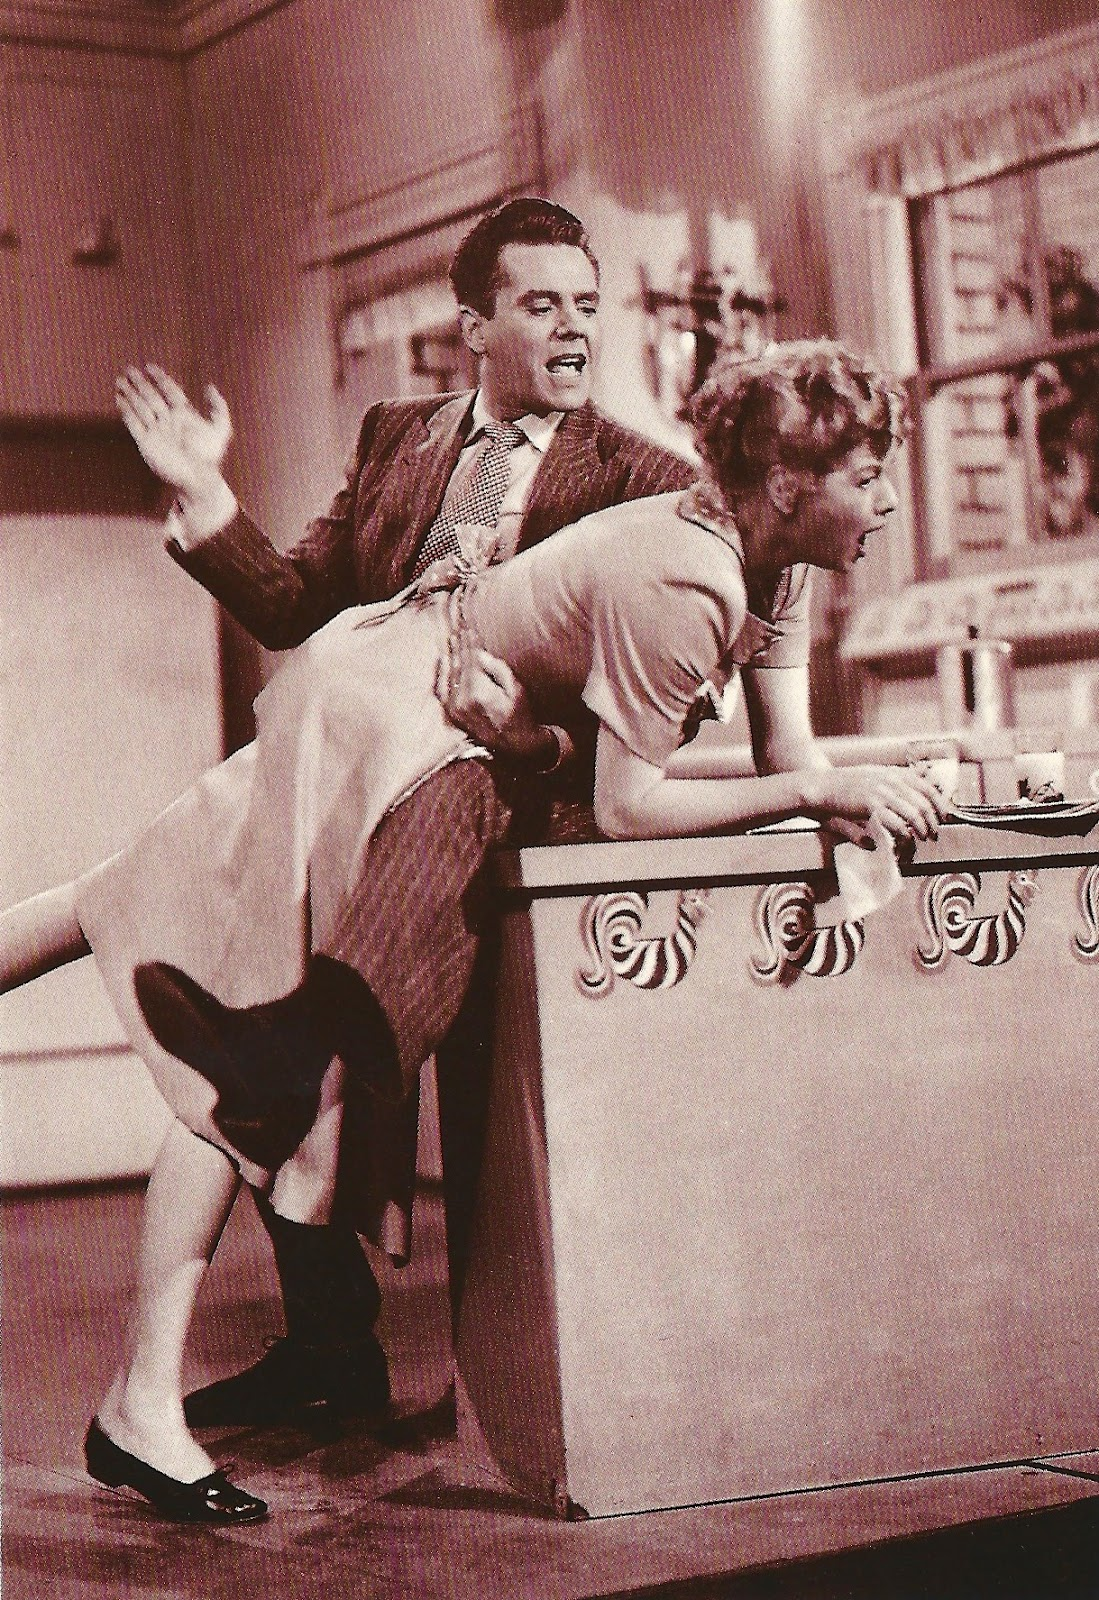 Lucy And Desi Arnaz My Favorite Movies And Stars I Love Lucy Getting Spanked